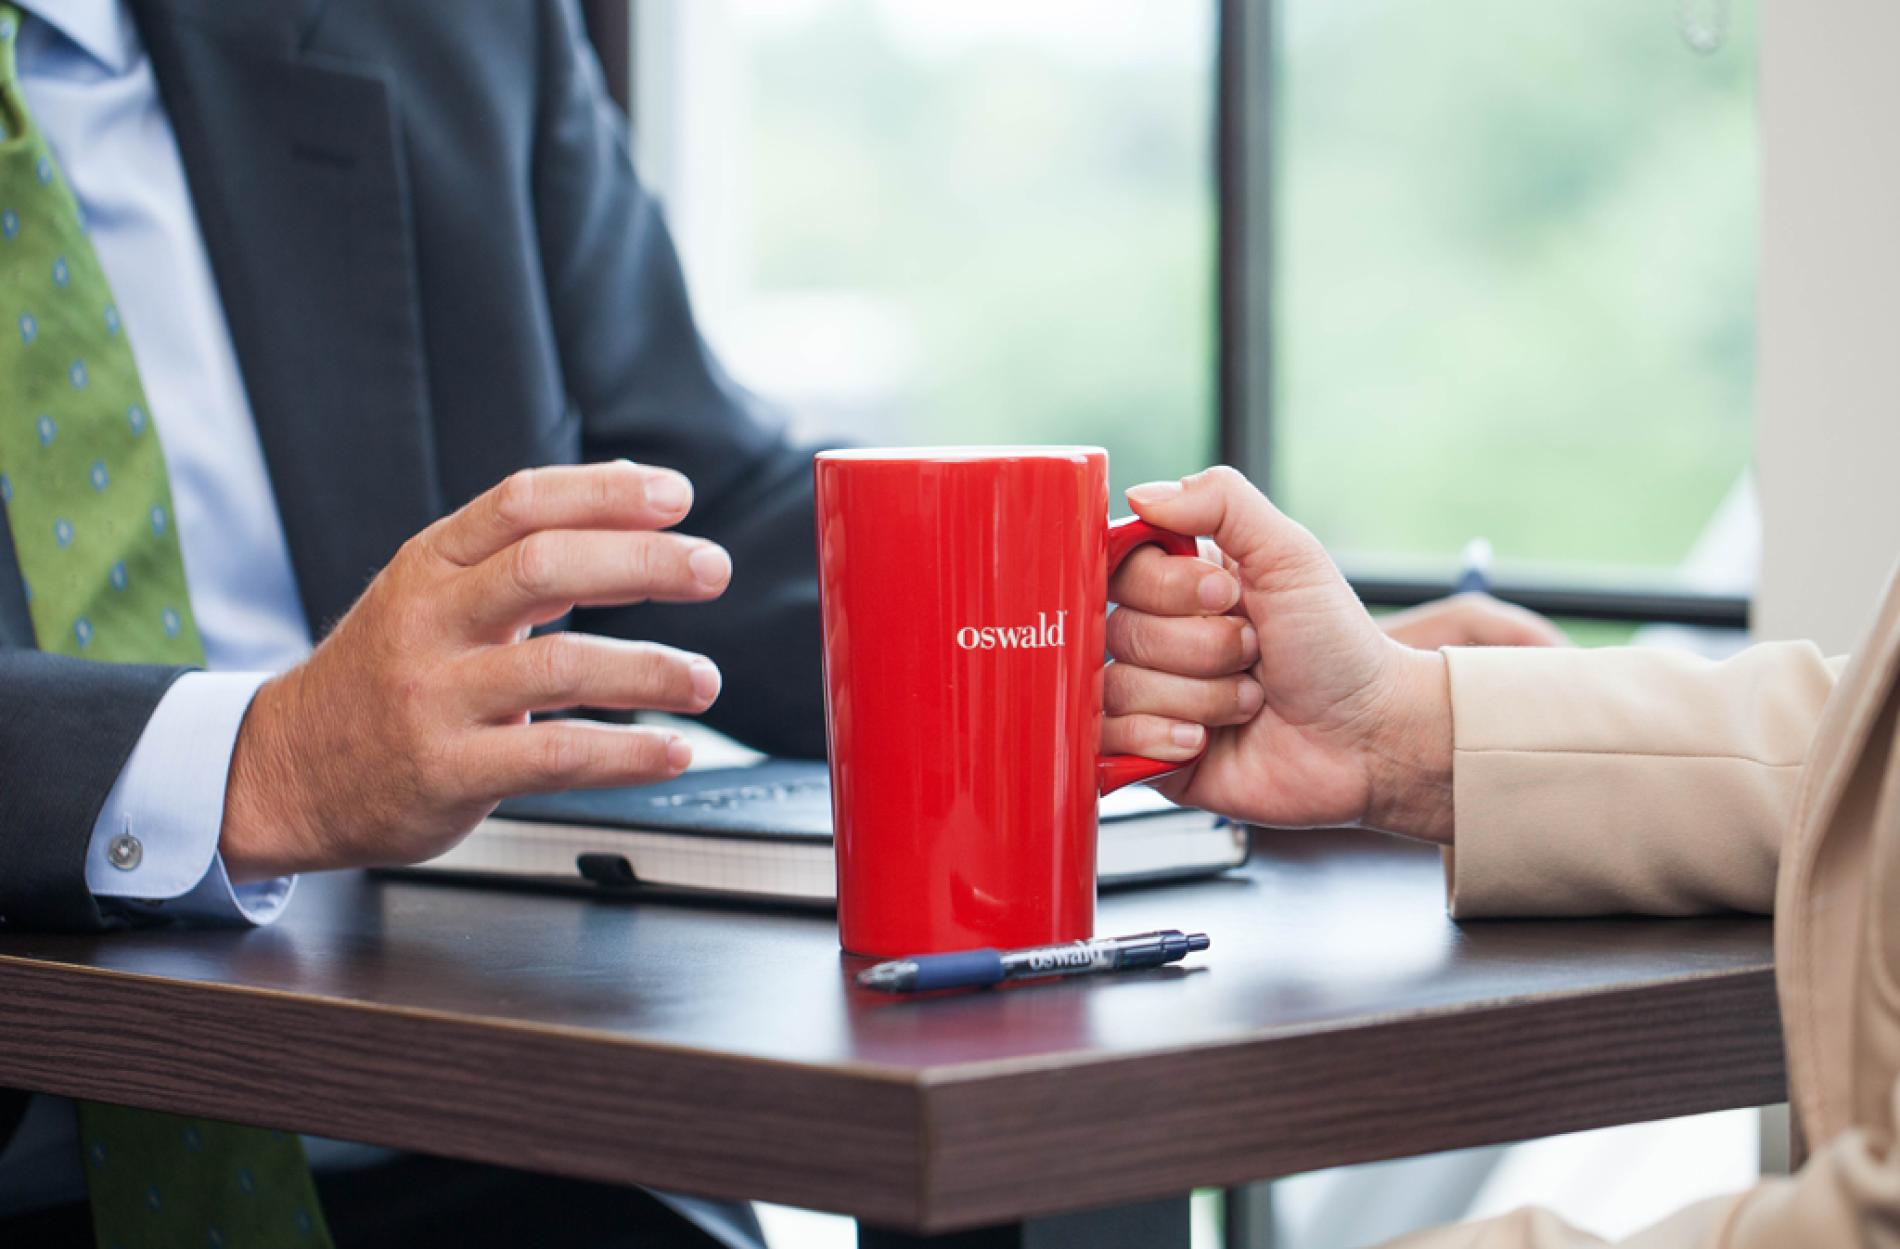 Hand holding a red mug on a table